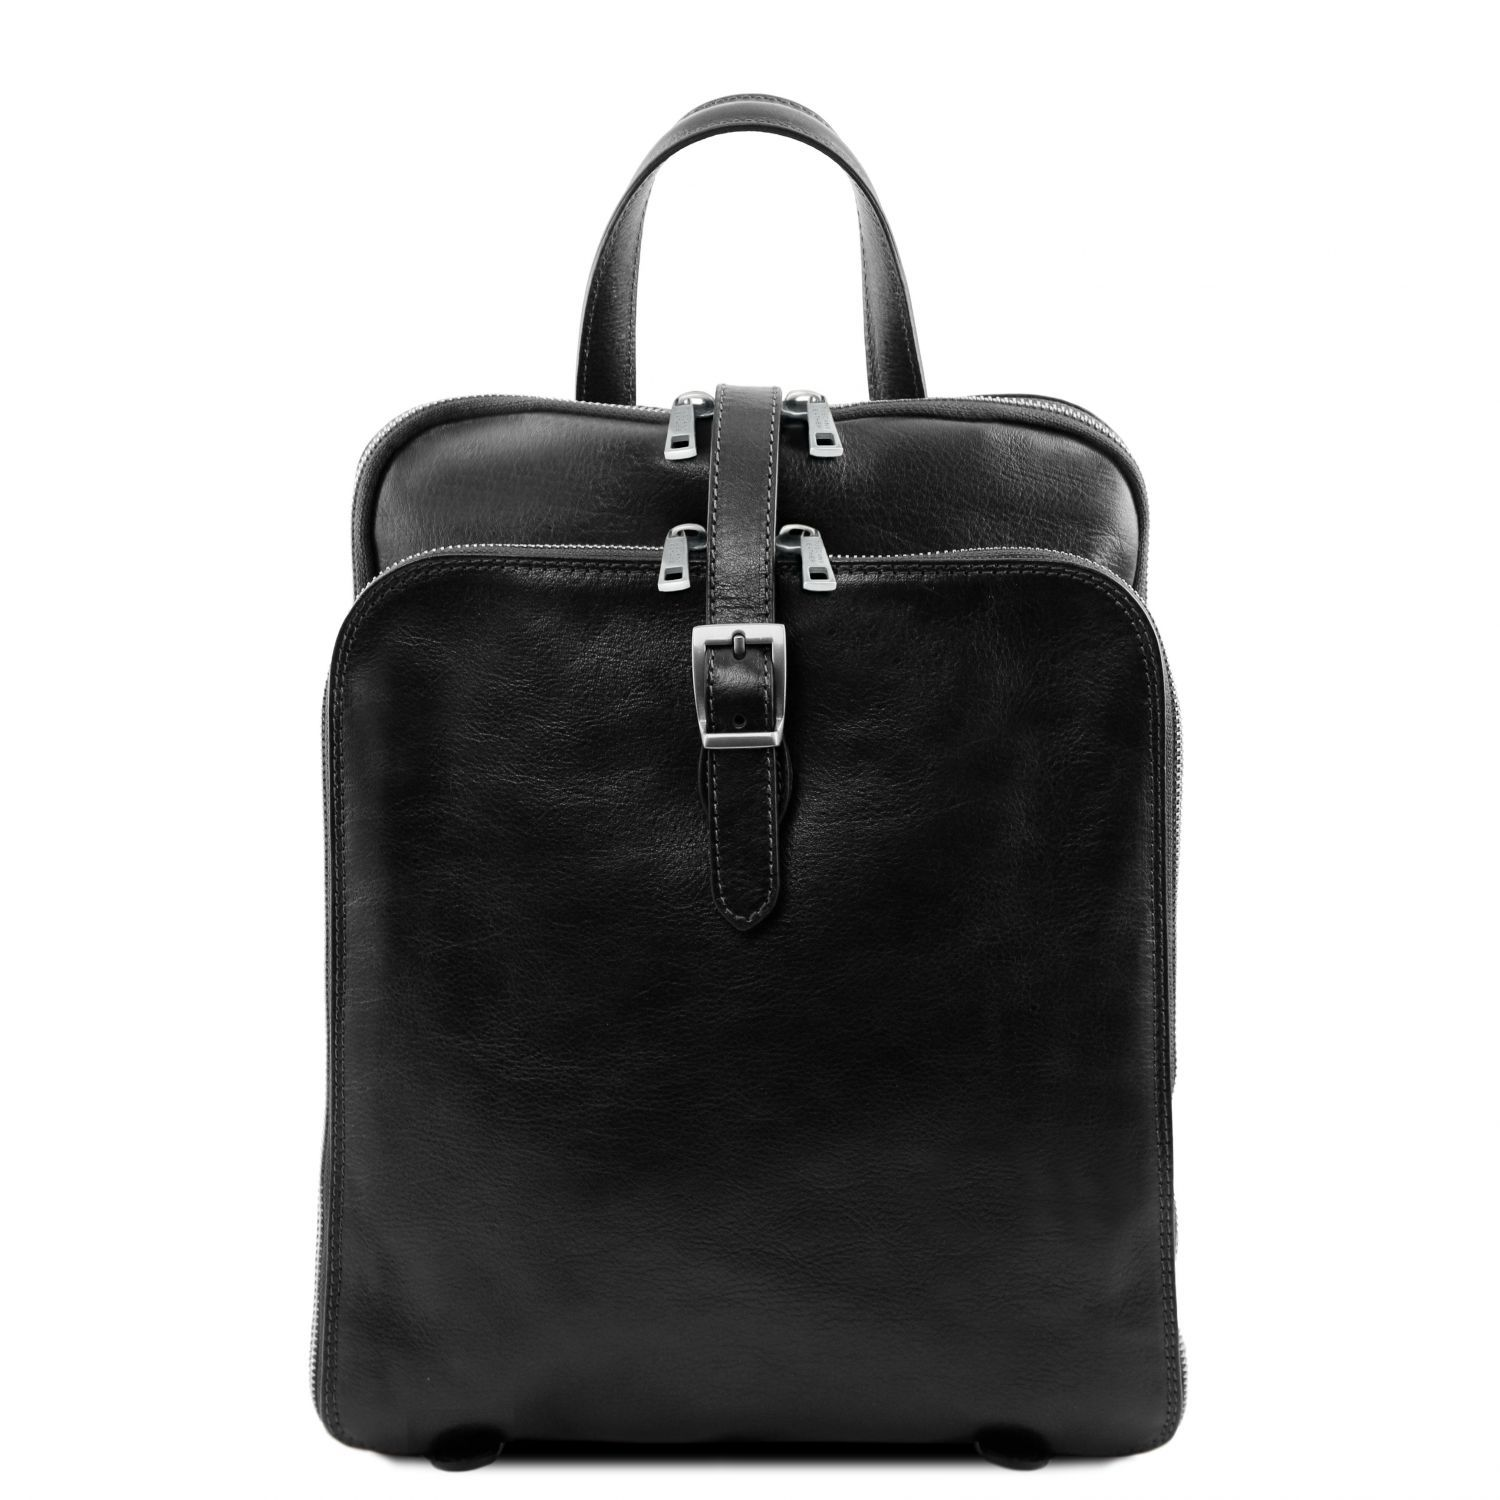 Abbildung von 3 Compartments leather backpack Black